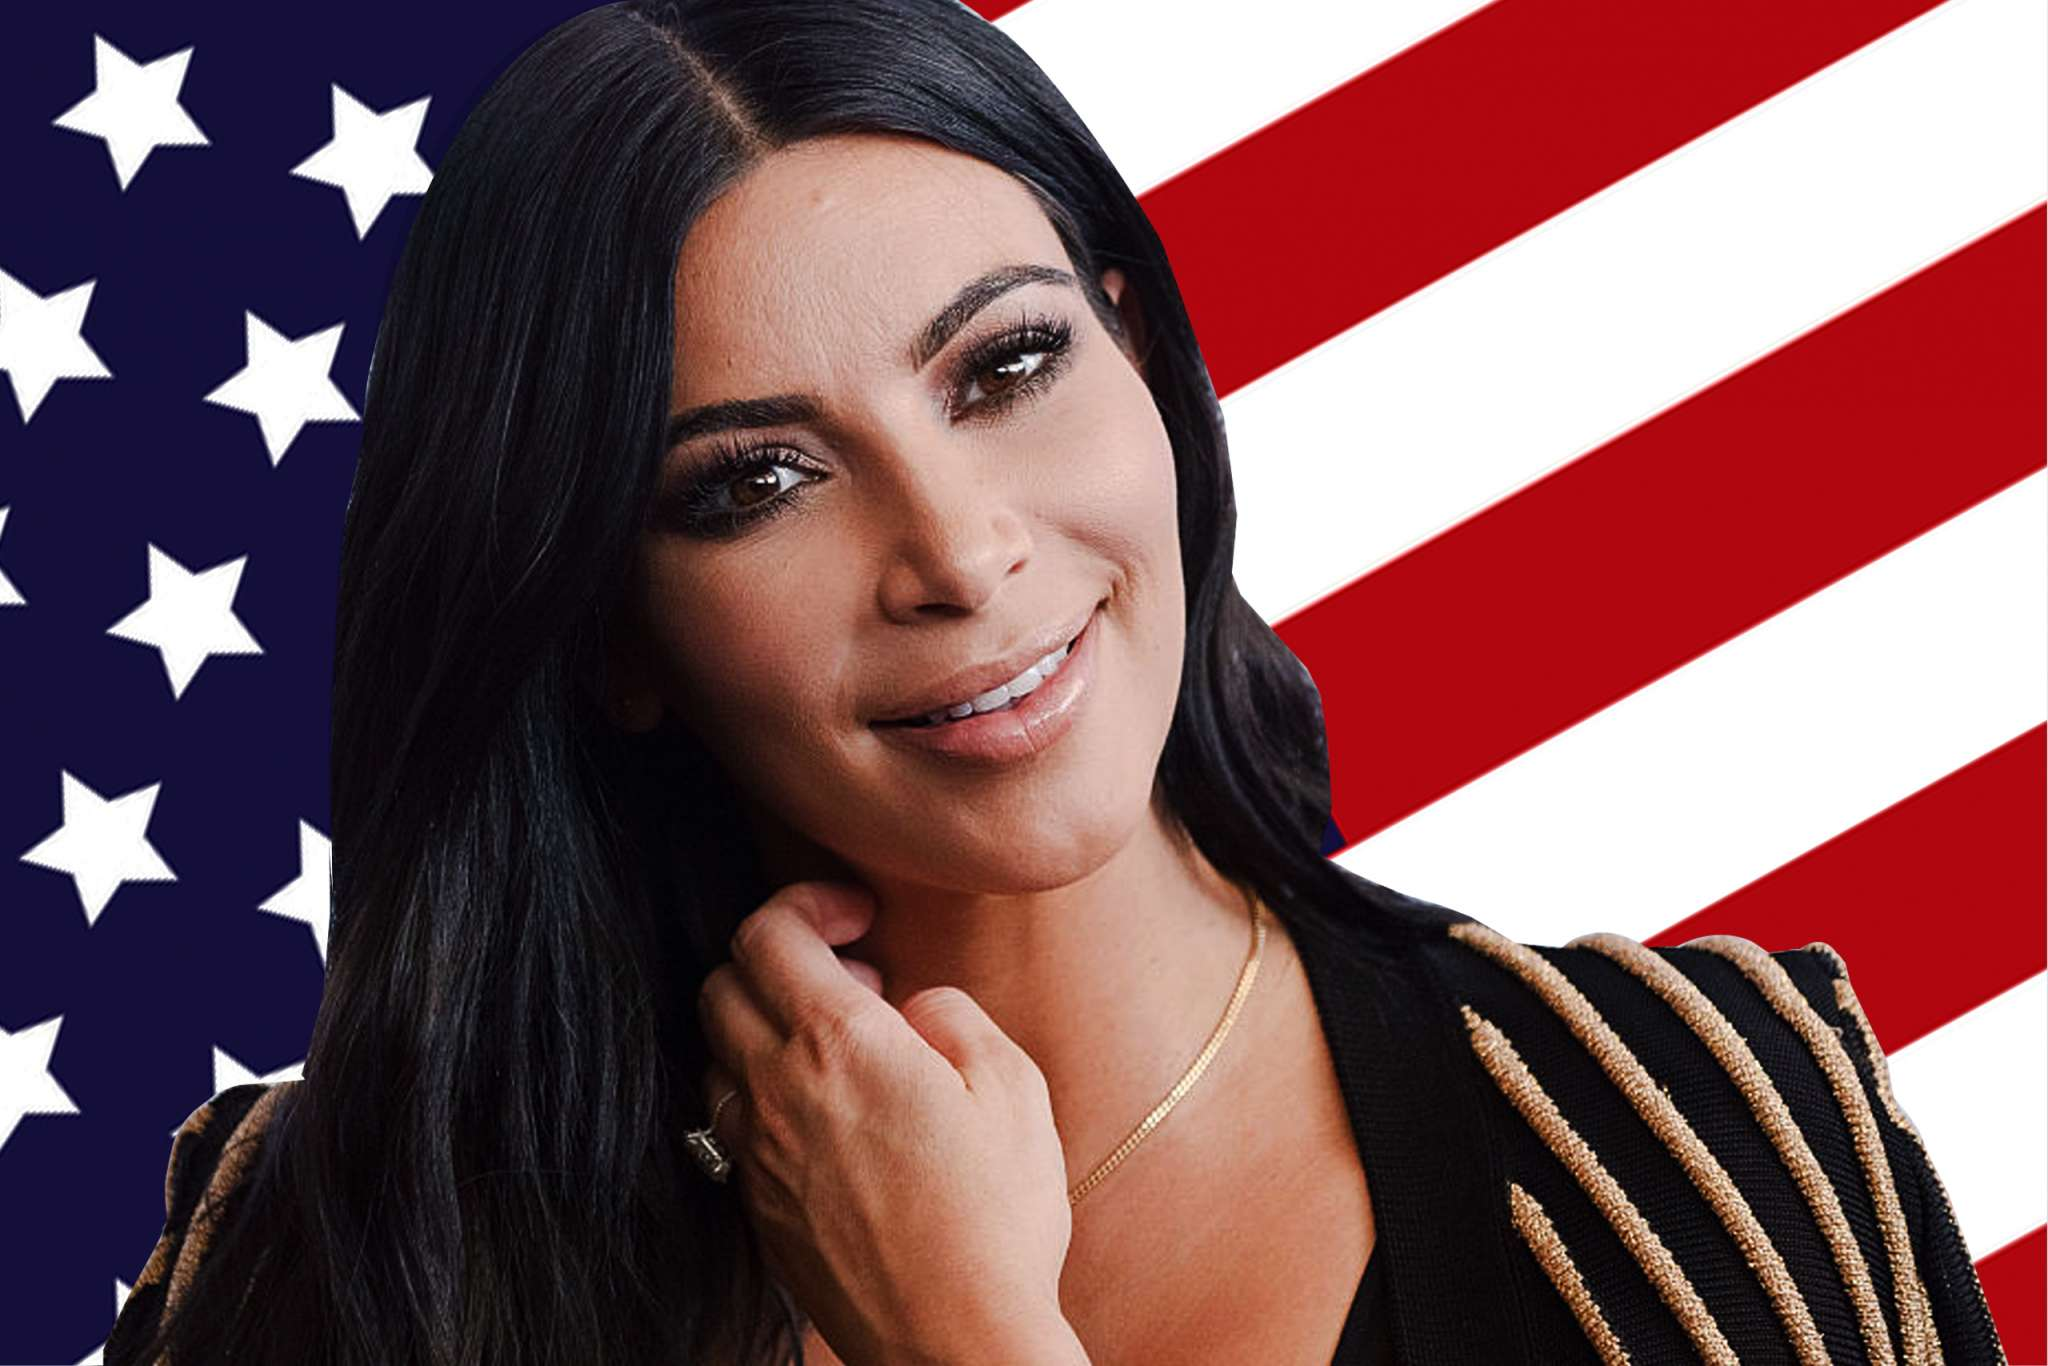 Kim Kardashian Wants To Bring An End To The California Death Penalty - Some People Say She's Doing It For The KUWK's Sake